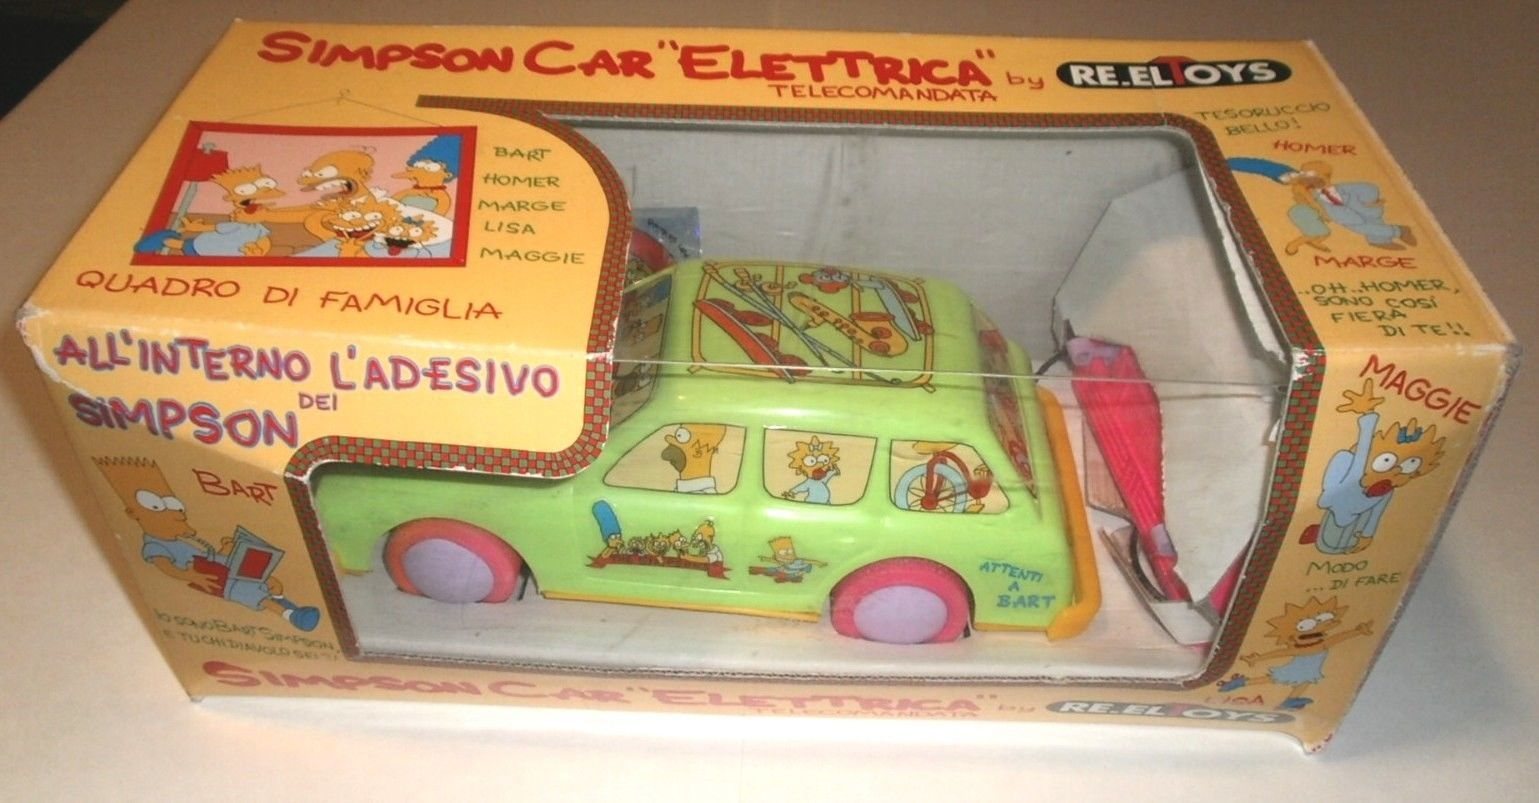 "The Simpsons Electric Toy RC Car ""Elettrica"" re Eltoys"